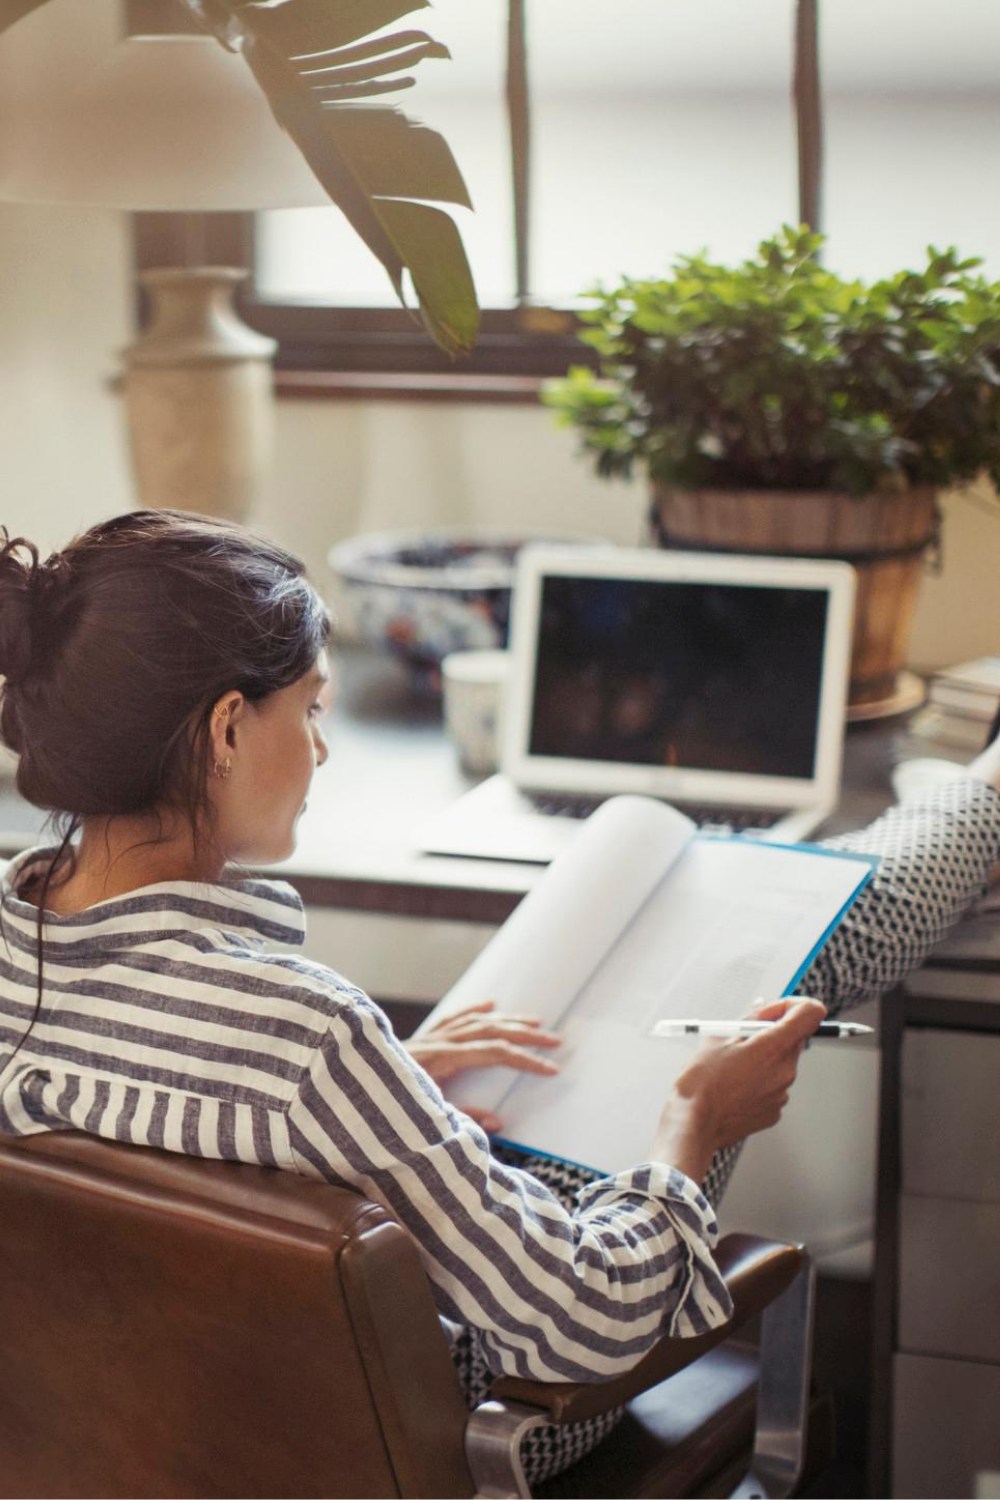 Remote working flexible working rights for a better work-life balance